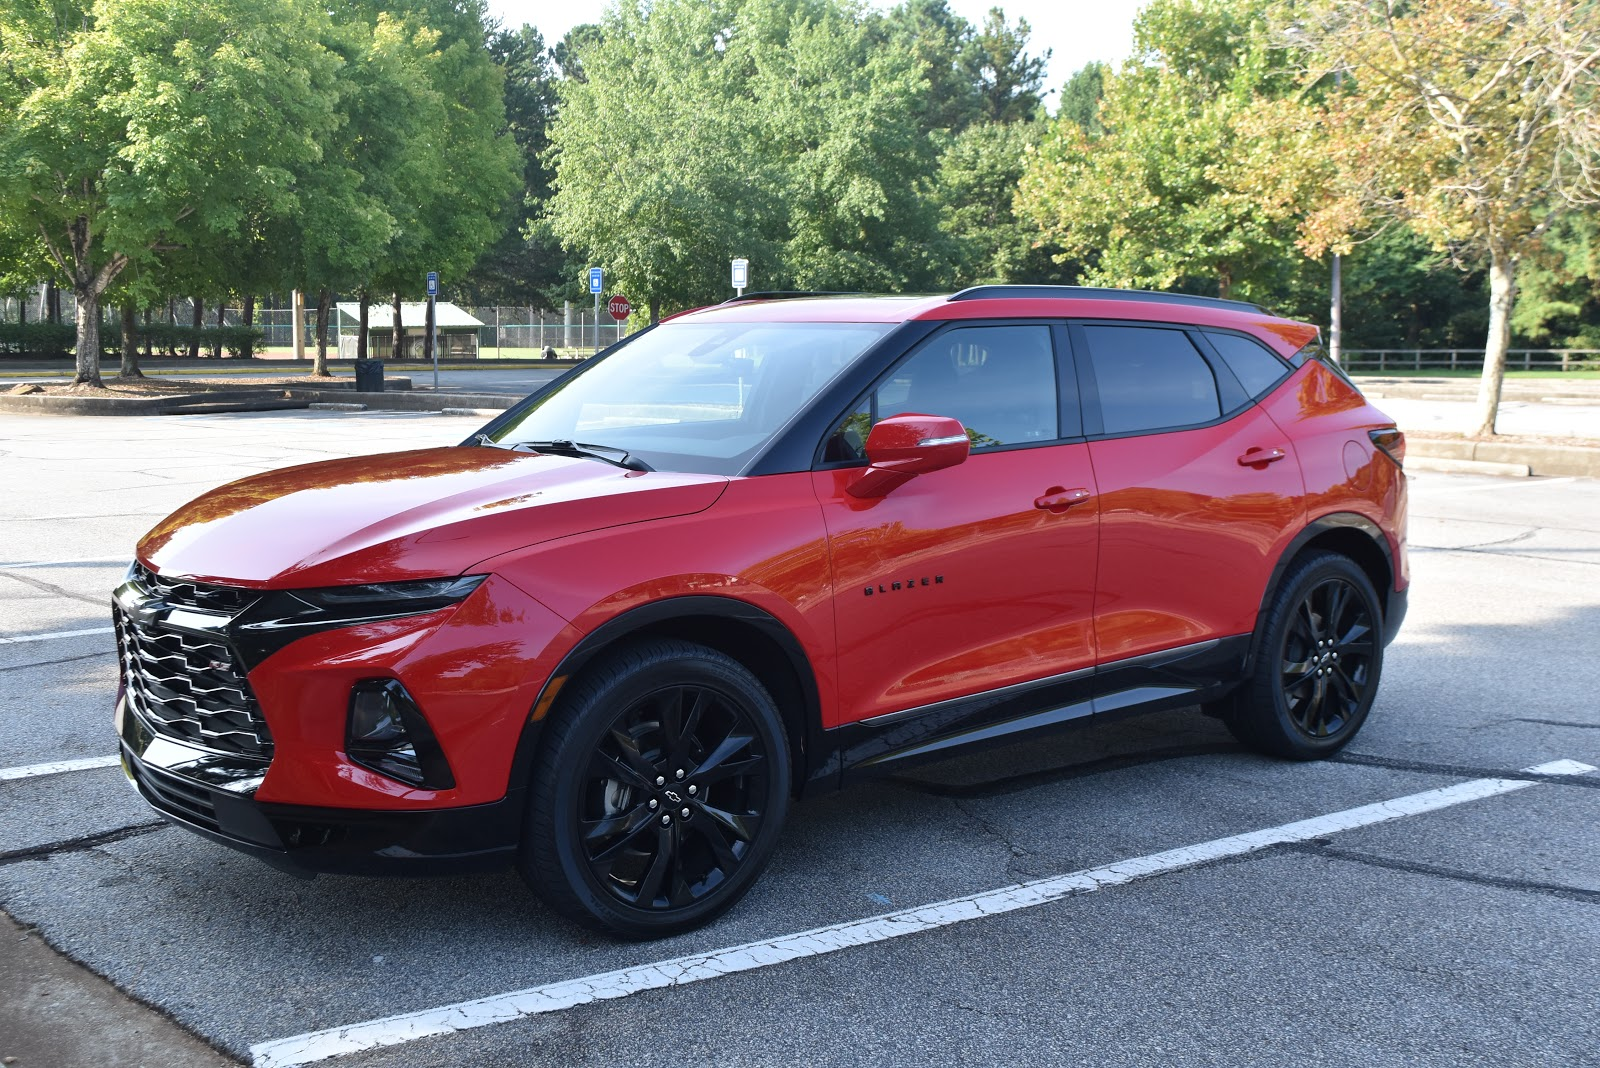 Video: The All-New 2019 Chevy Blazer RS AWD is Blazing HOT!